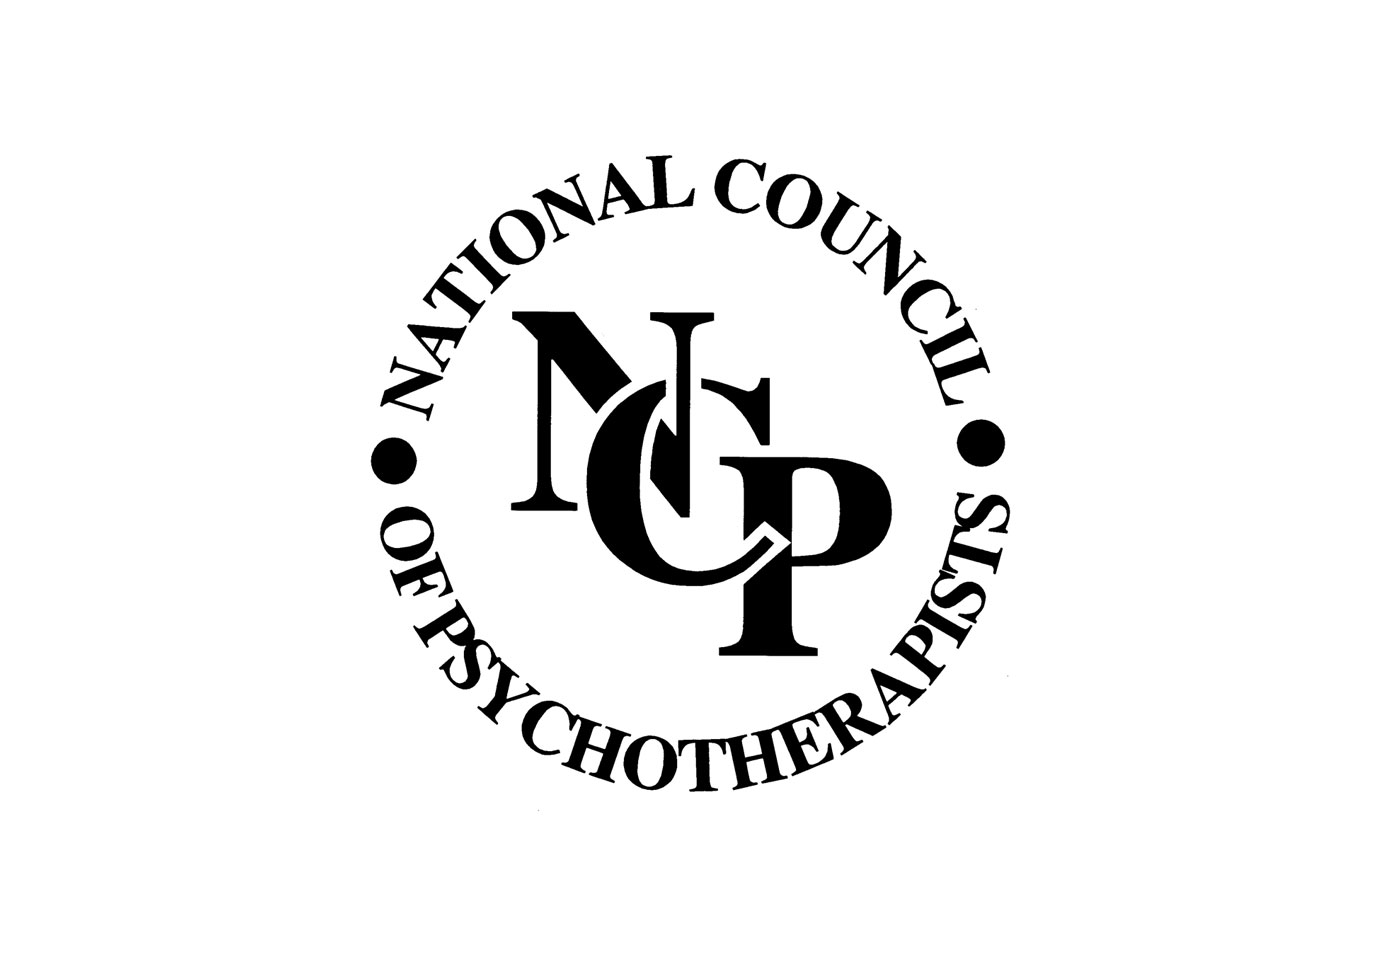 national council of psycotherapists